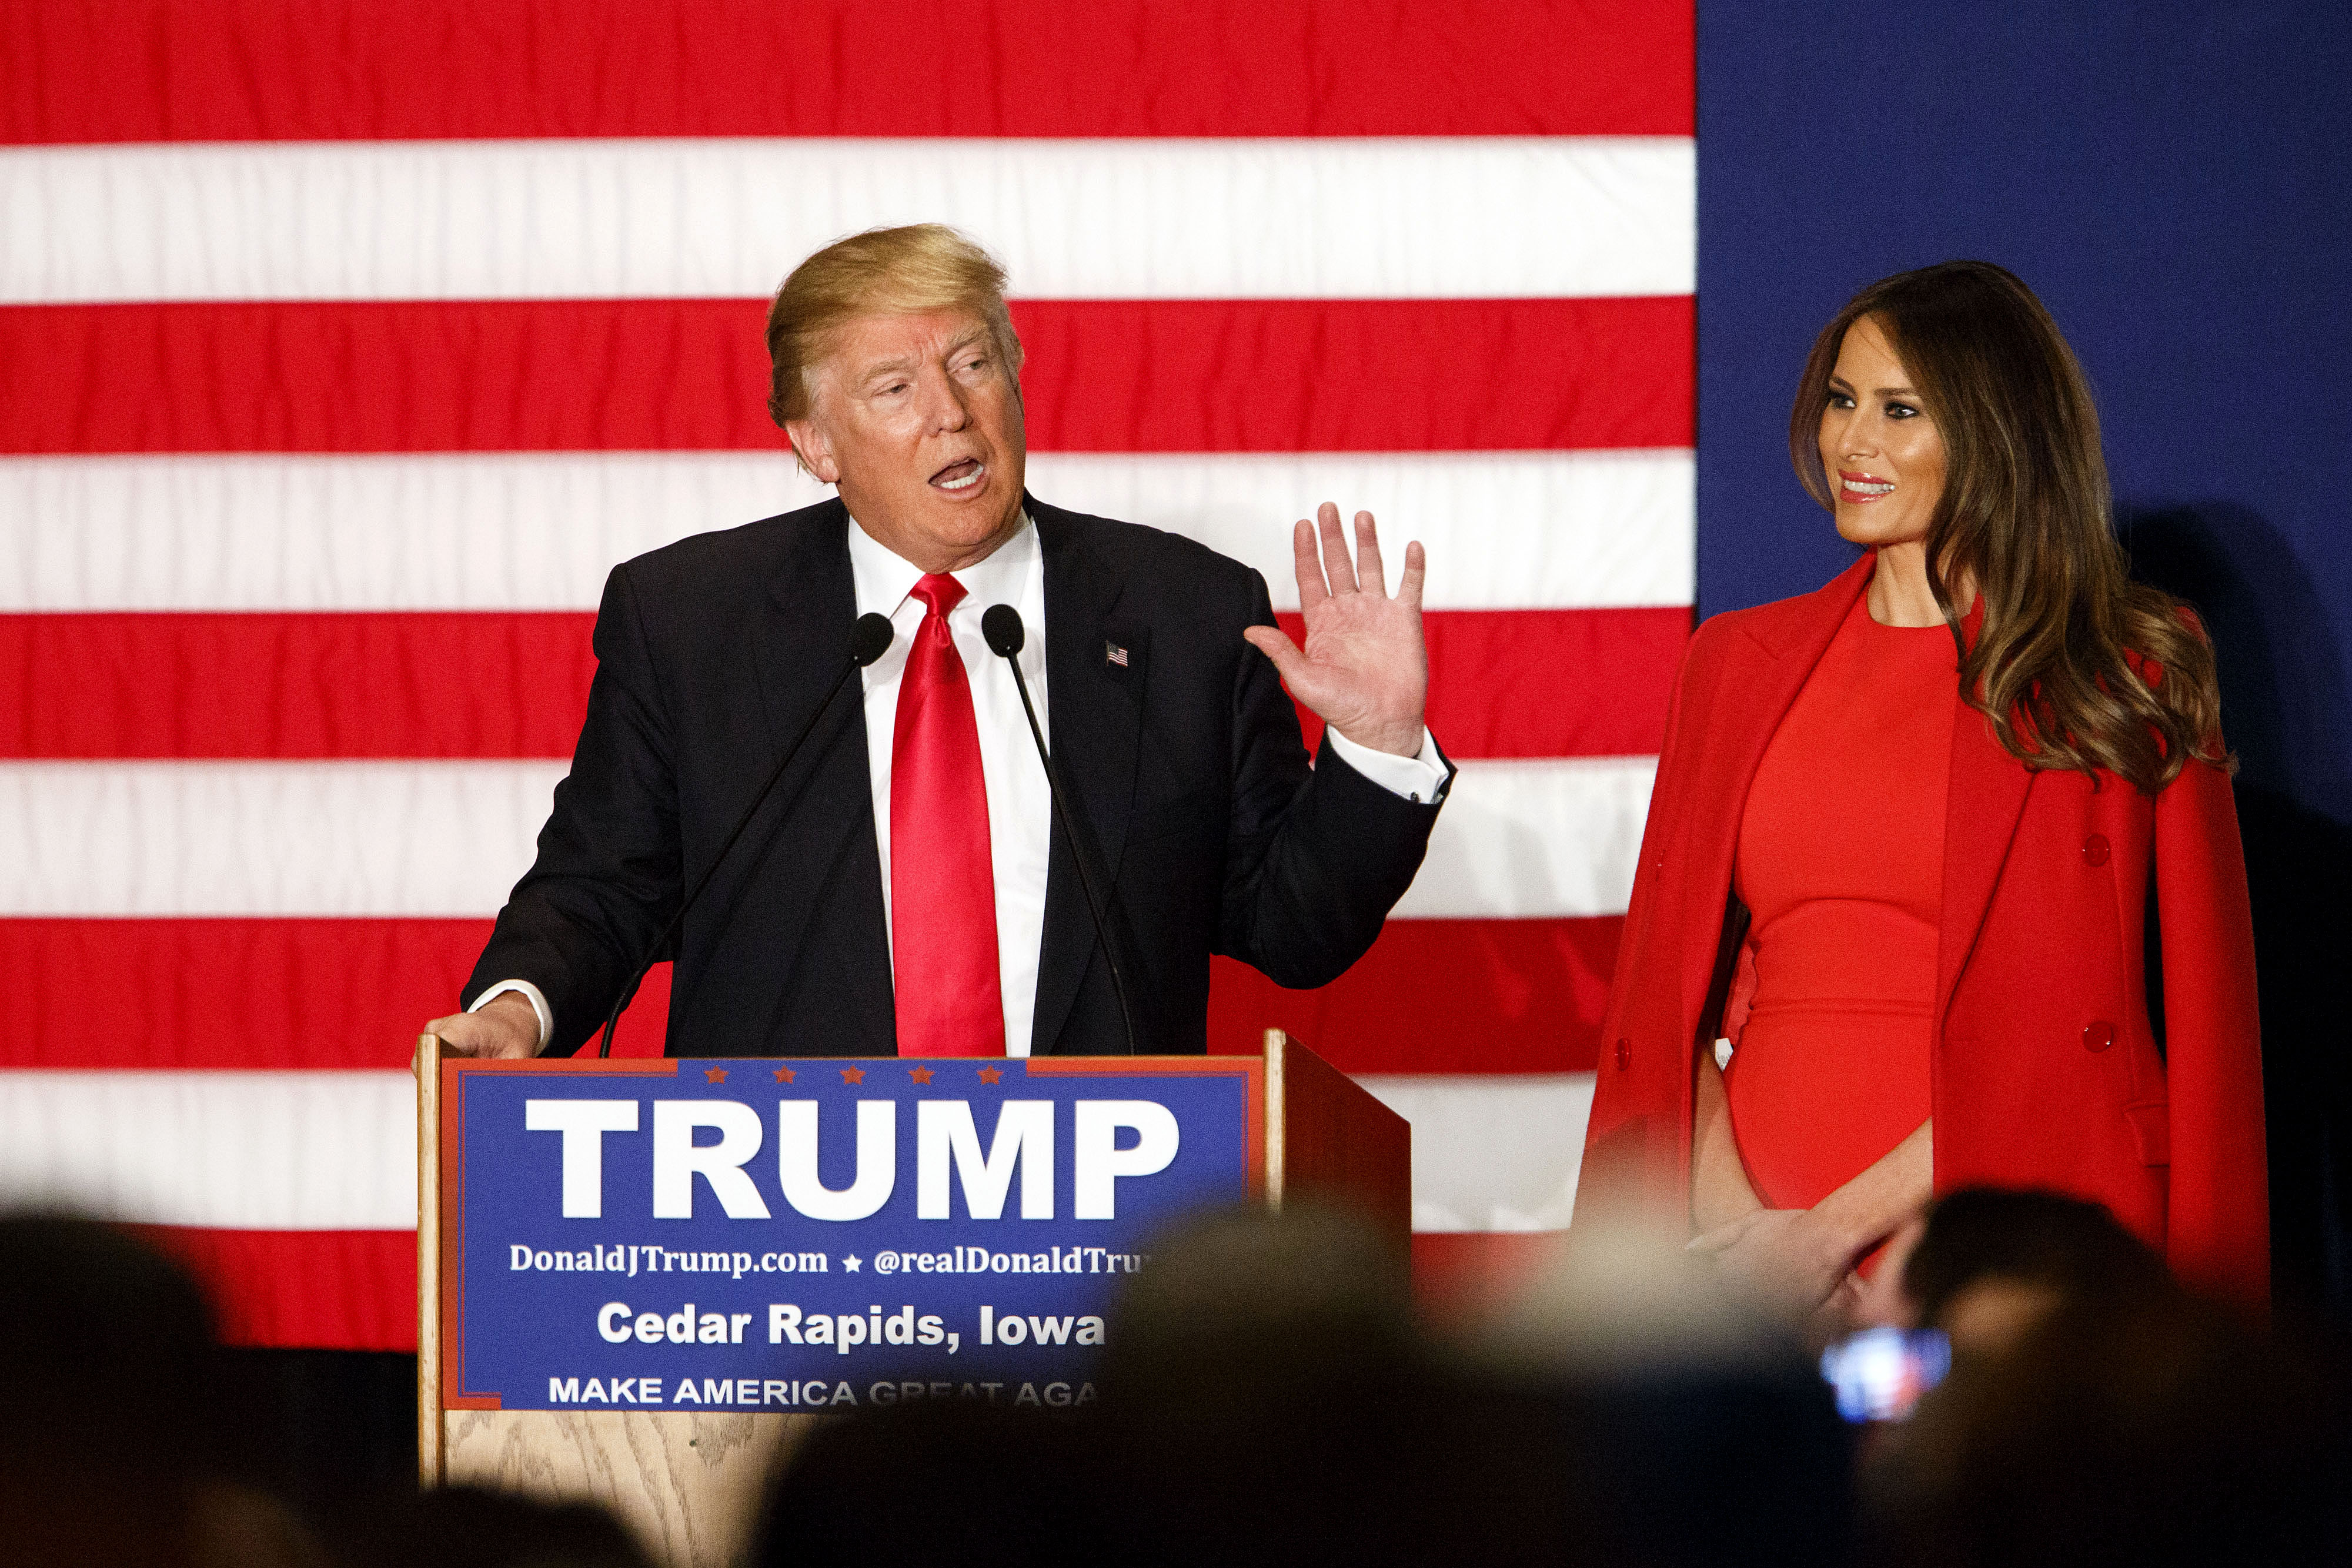 Donald Trump, president and chief executive of Trump Organization Inc. and 2016 Republican presidential candidate, left, speaks as wife Melania Trump listens during a campaign event in Cedar Rapids, Iowa, U.S., on Monday, Feb. 1, 2016.